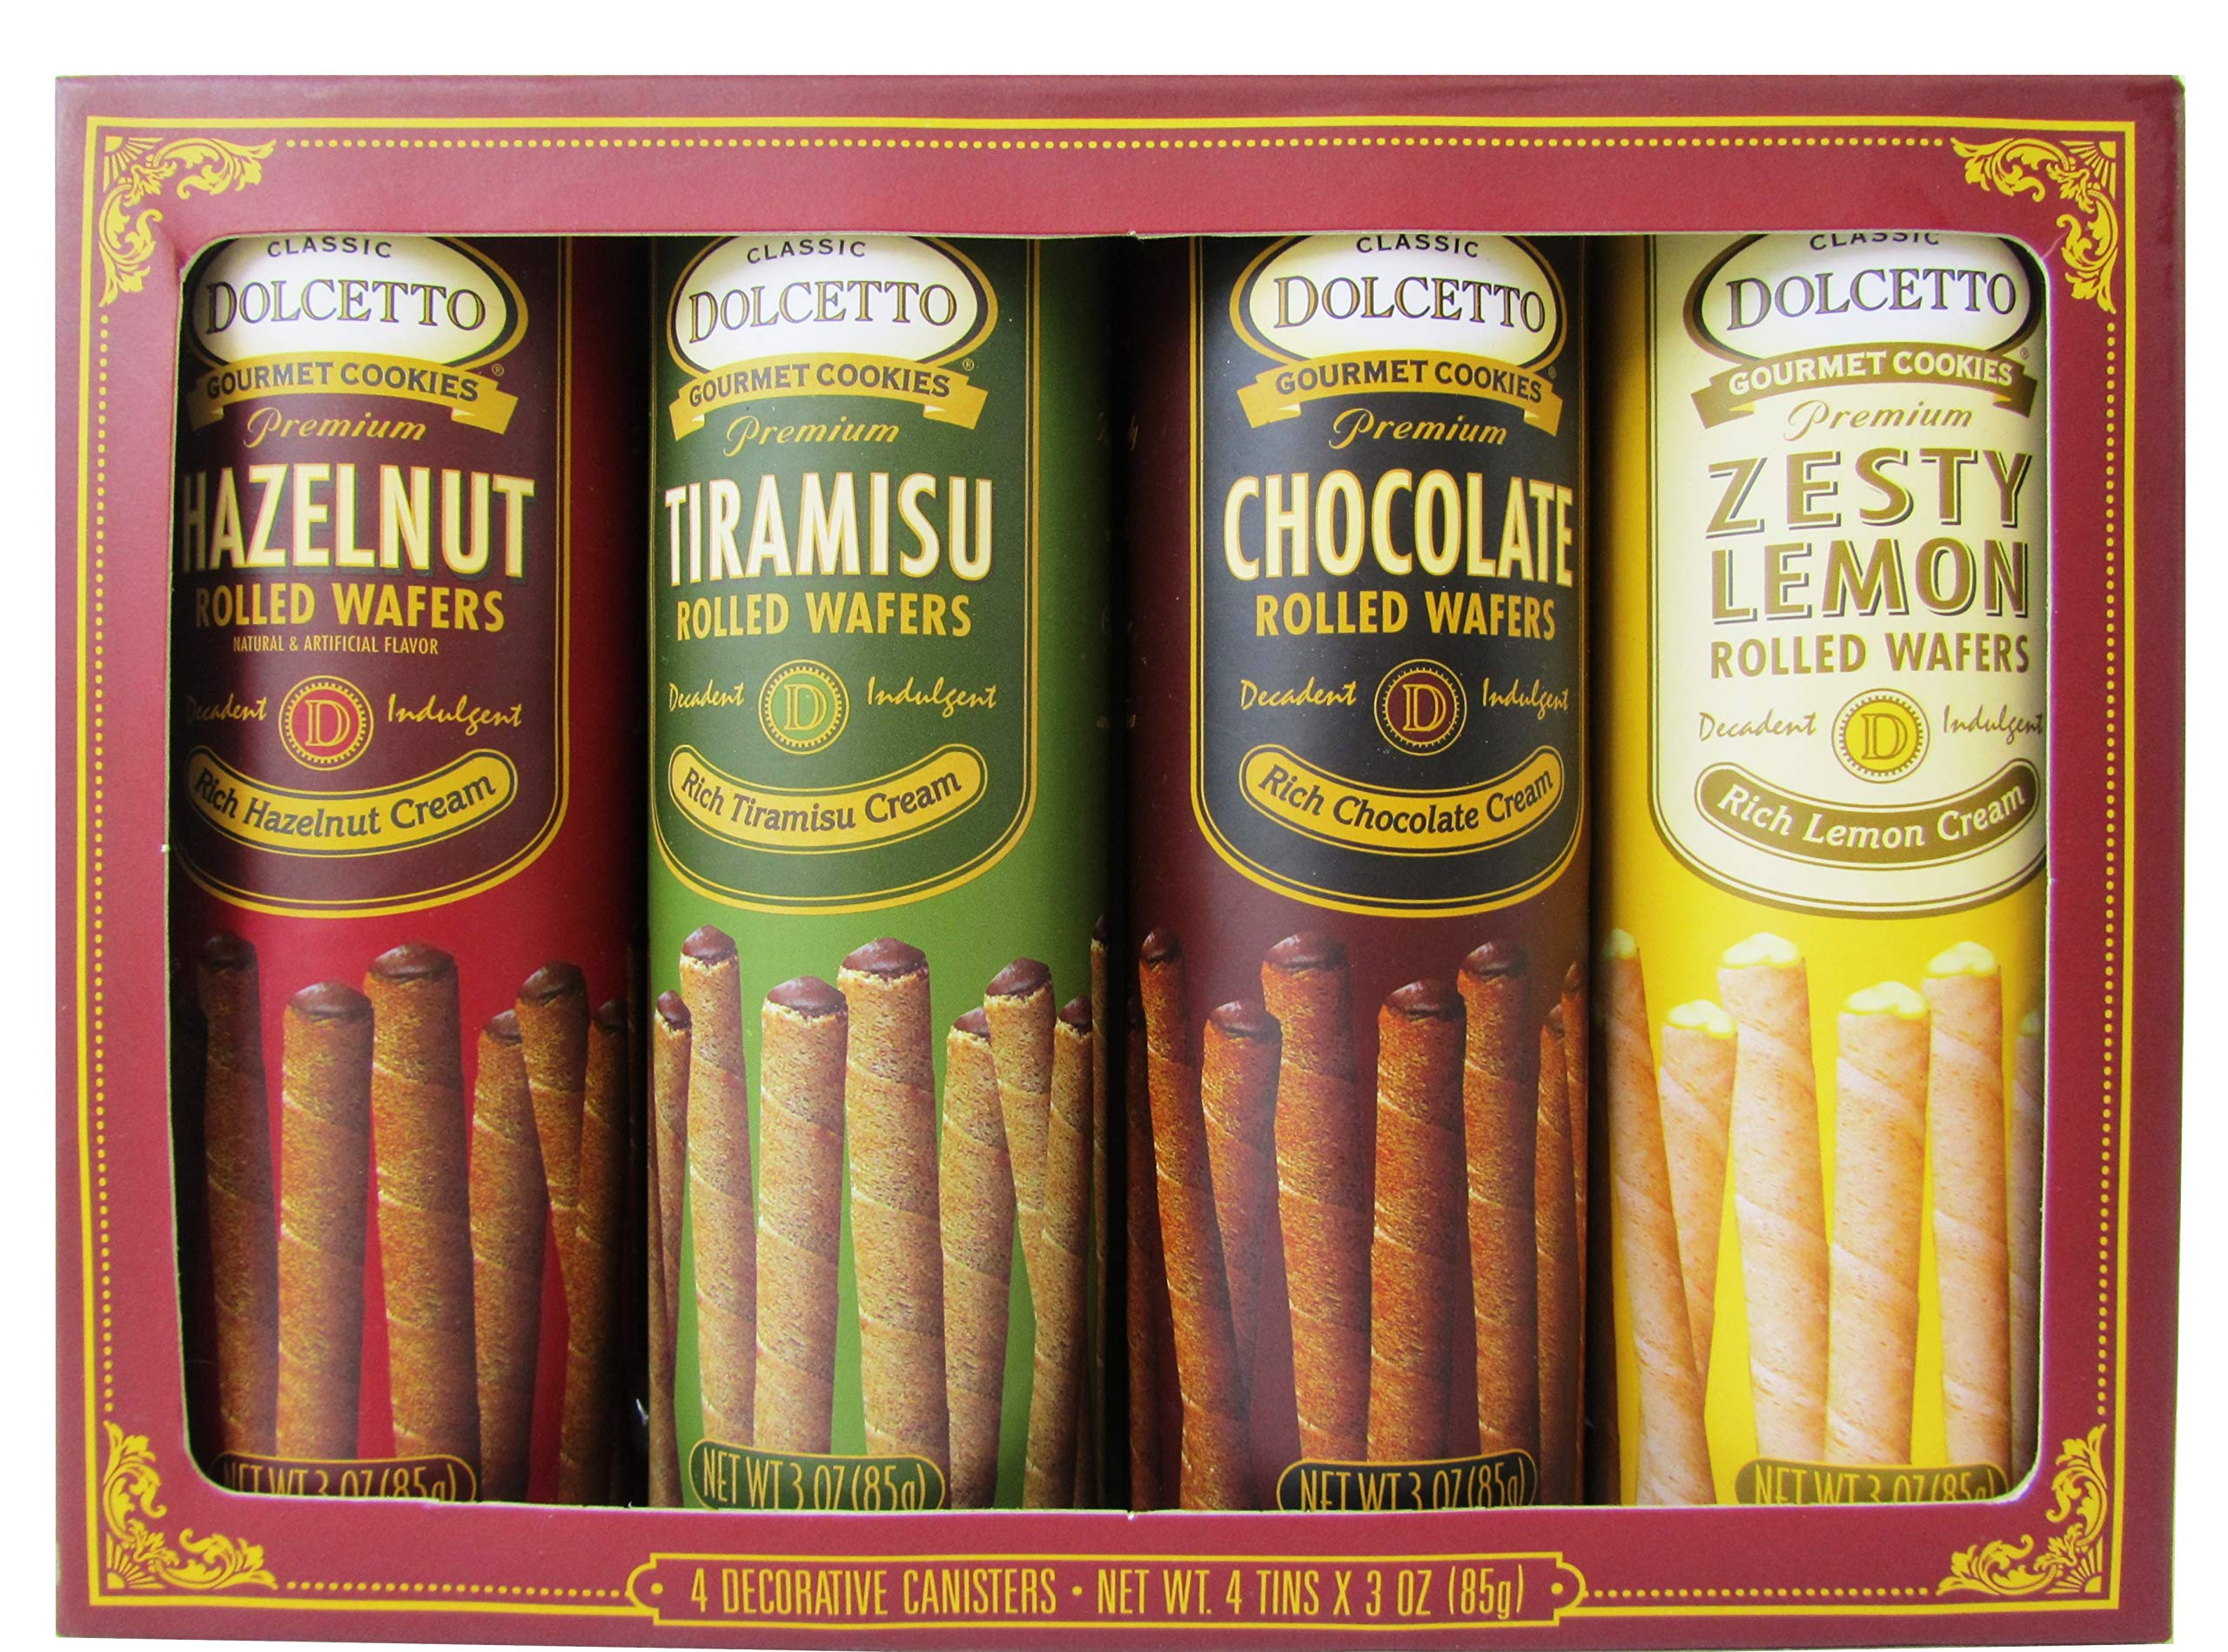 Gourmet Gift Set by Dolcetto - Premium Cream Filled Rolled Wafers Gourmet Cookies 4 Flavor Variety Bundle